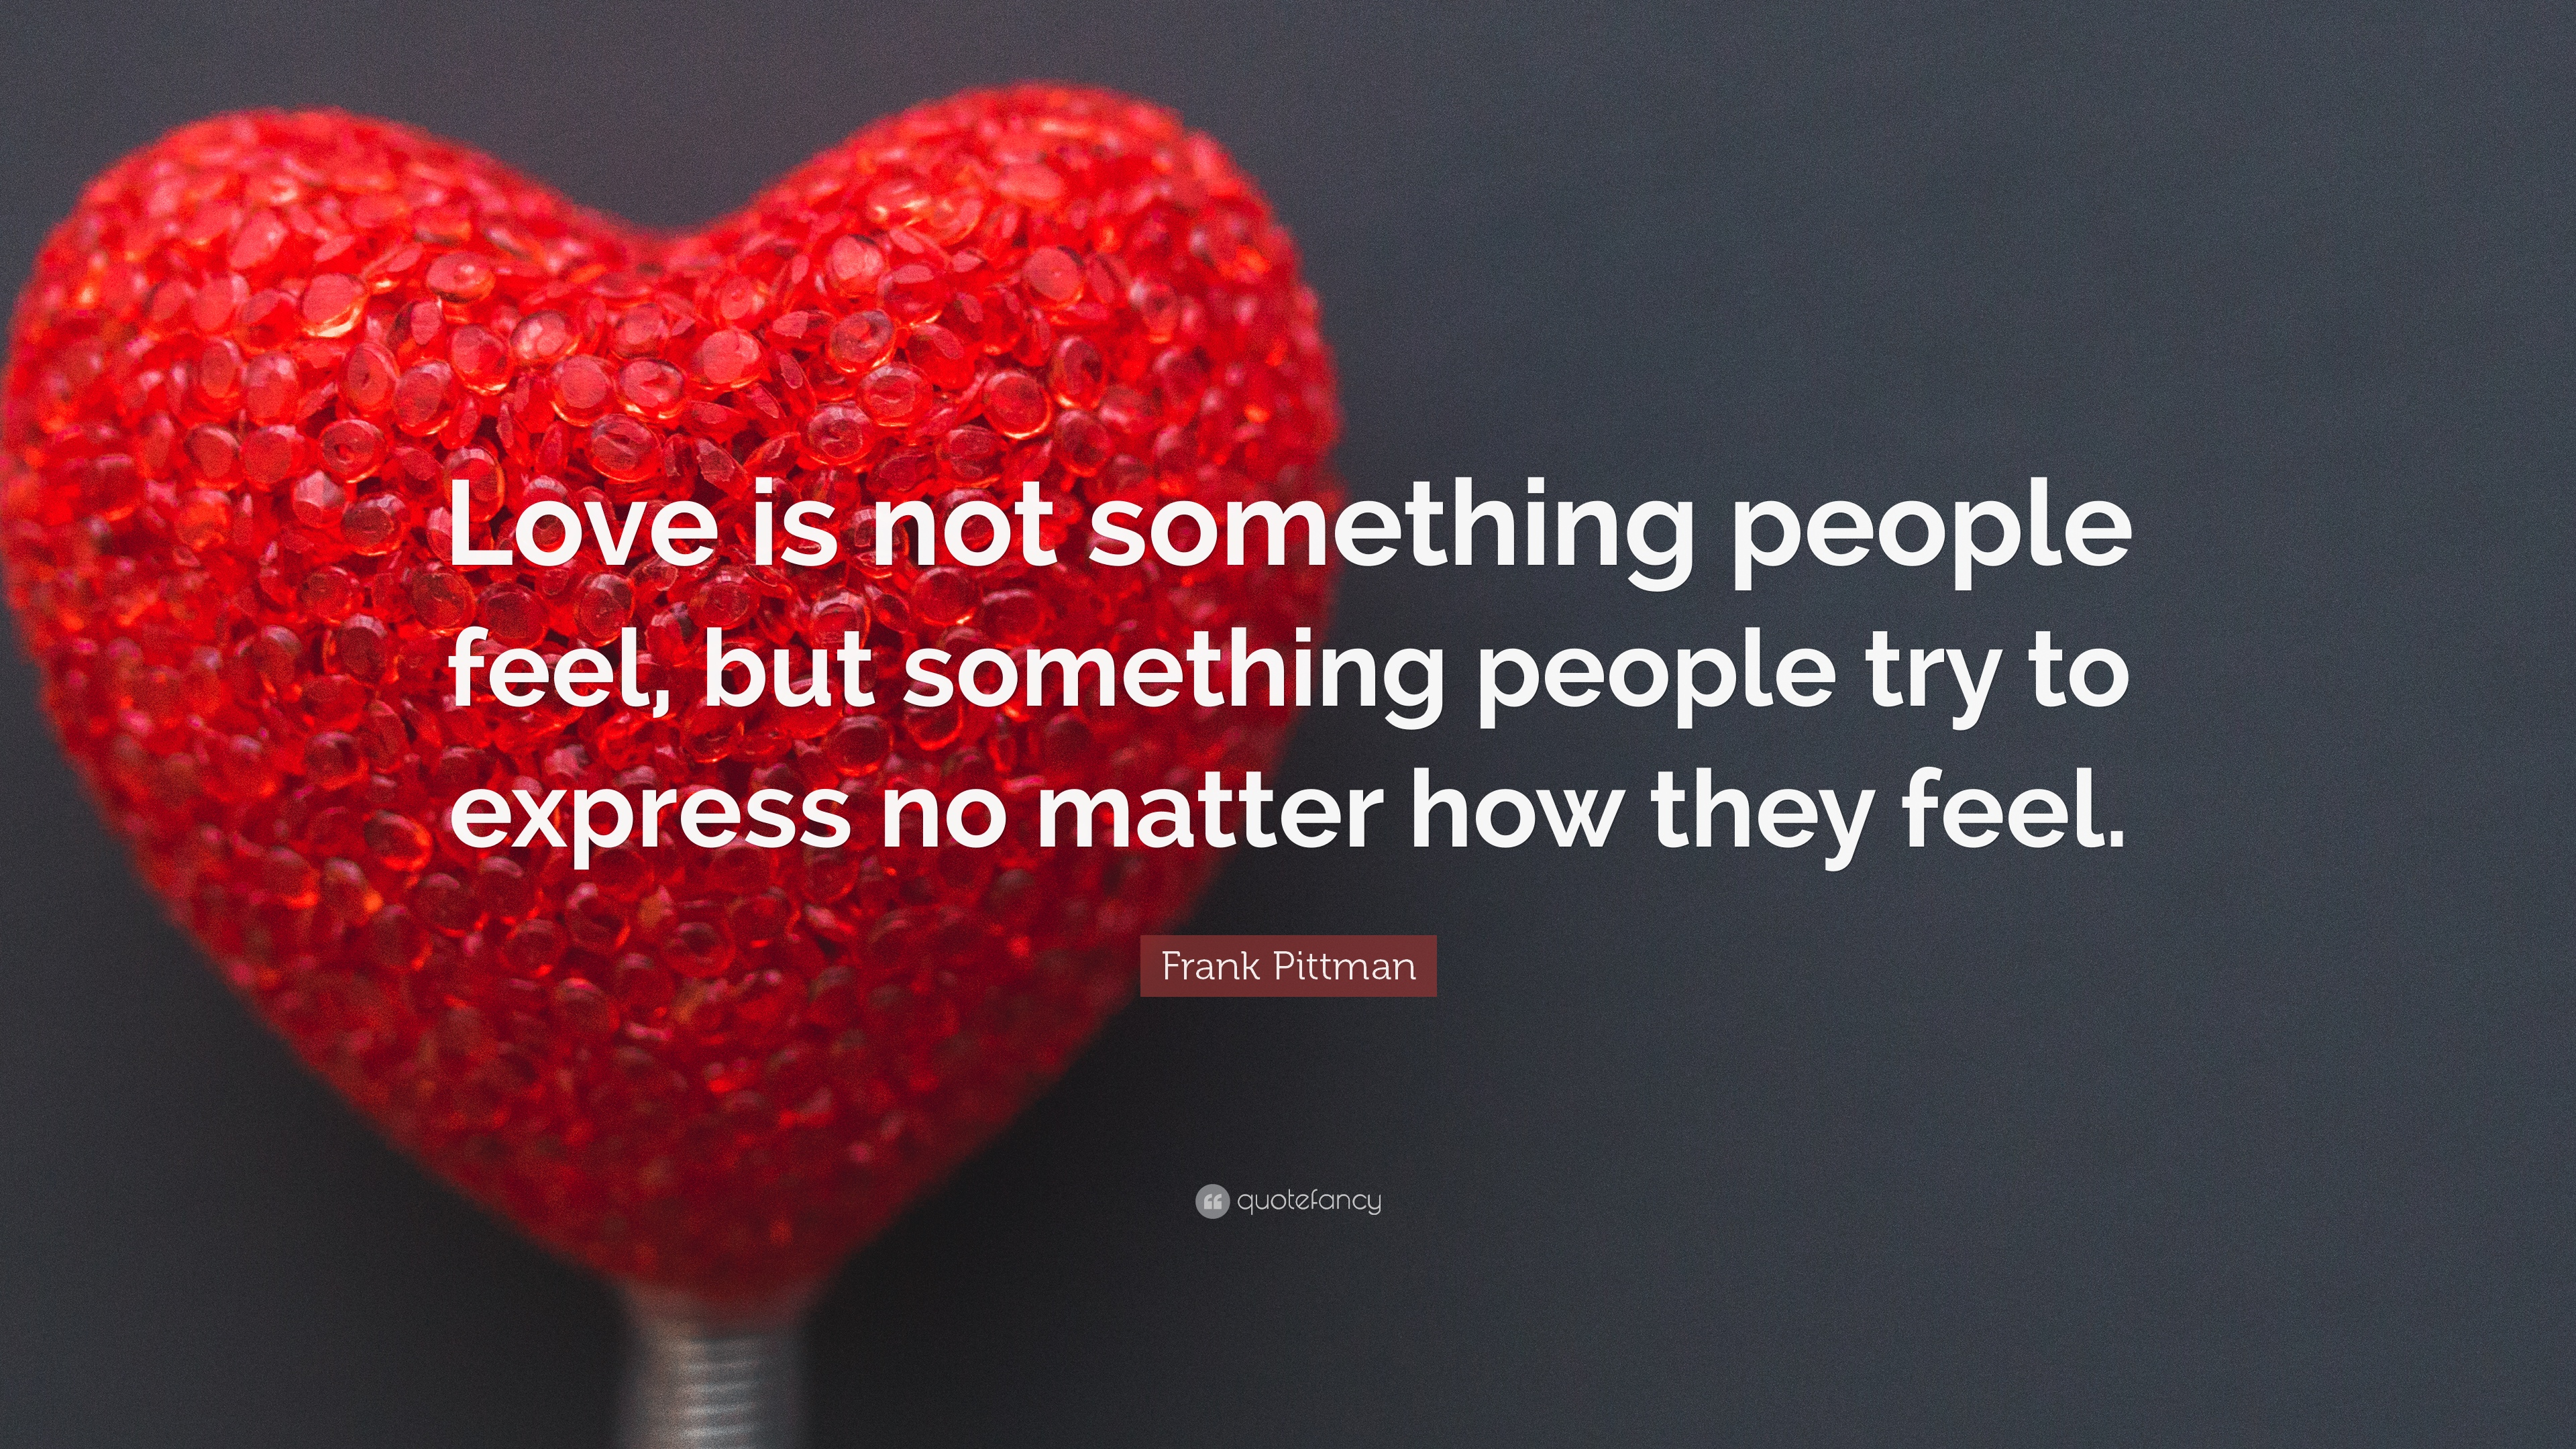 Wonderful Wallpaper Love Feel - 39810-Frank-Pittman-Quote-Love-is-not-something-people-feel-but  Pic_274156.jpg